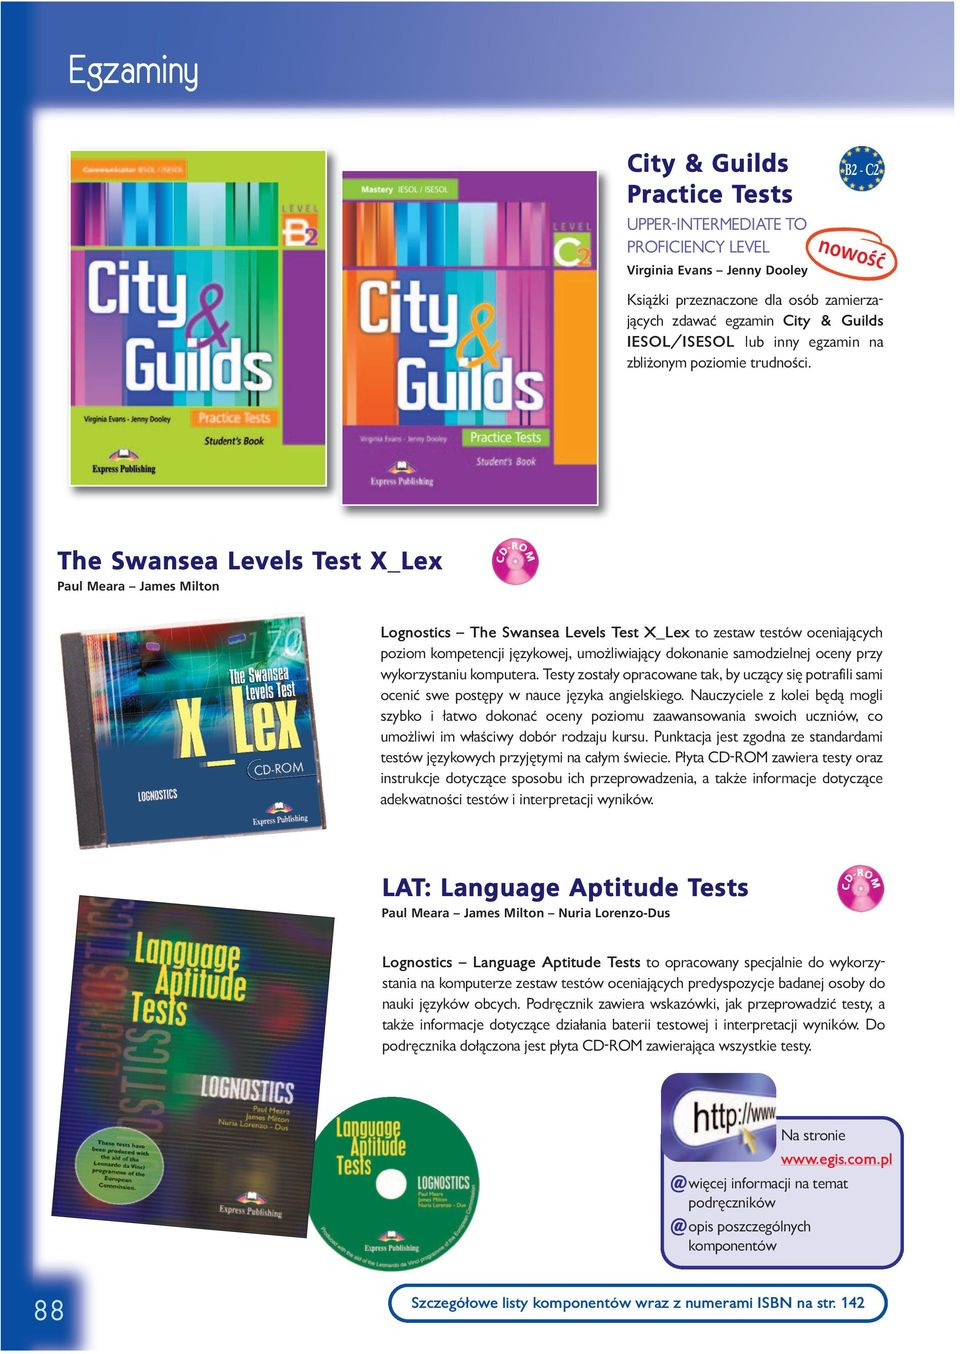 The Swansea Levels Test X_Lex Paul Meara James Milton CD-ROM Lognostics The Swansea Levels Test X_Lex to zestaw testów oceniających poziom kompetencji językowej, umożliwiający dokonanie samodzielnej